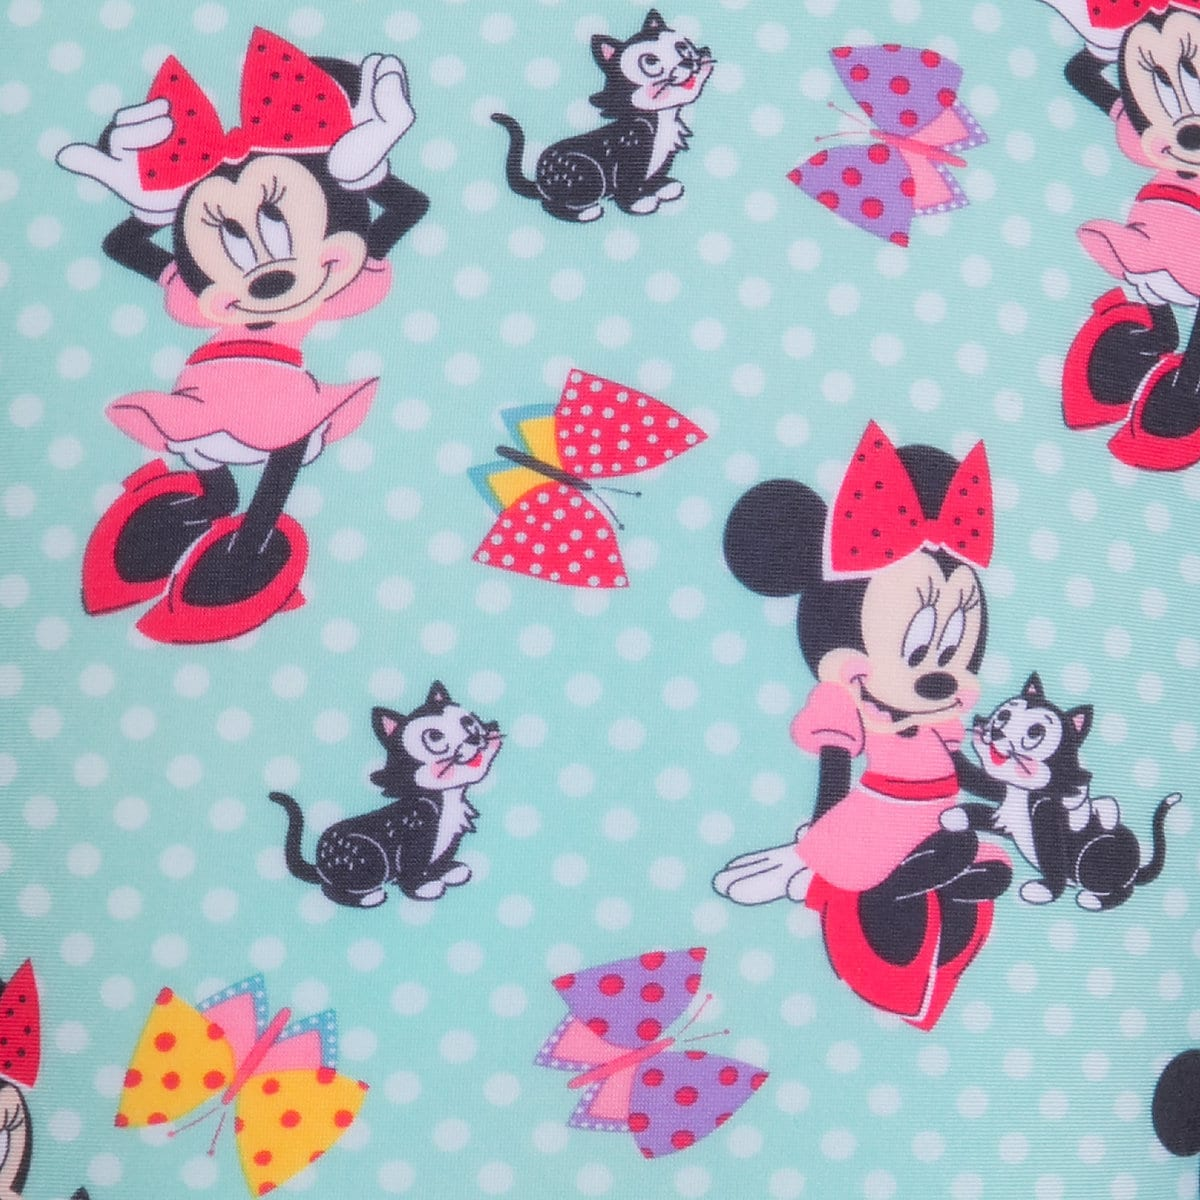 Minnie Mouse and Figaro Swimsuit for Girls | shopDisney